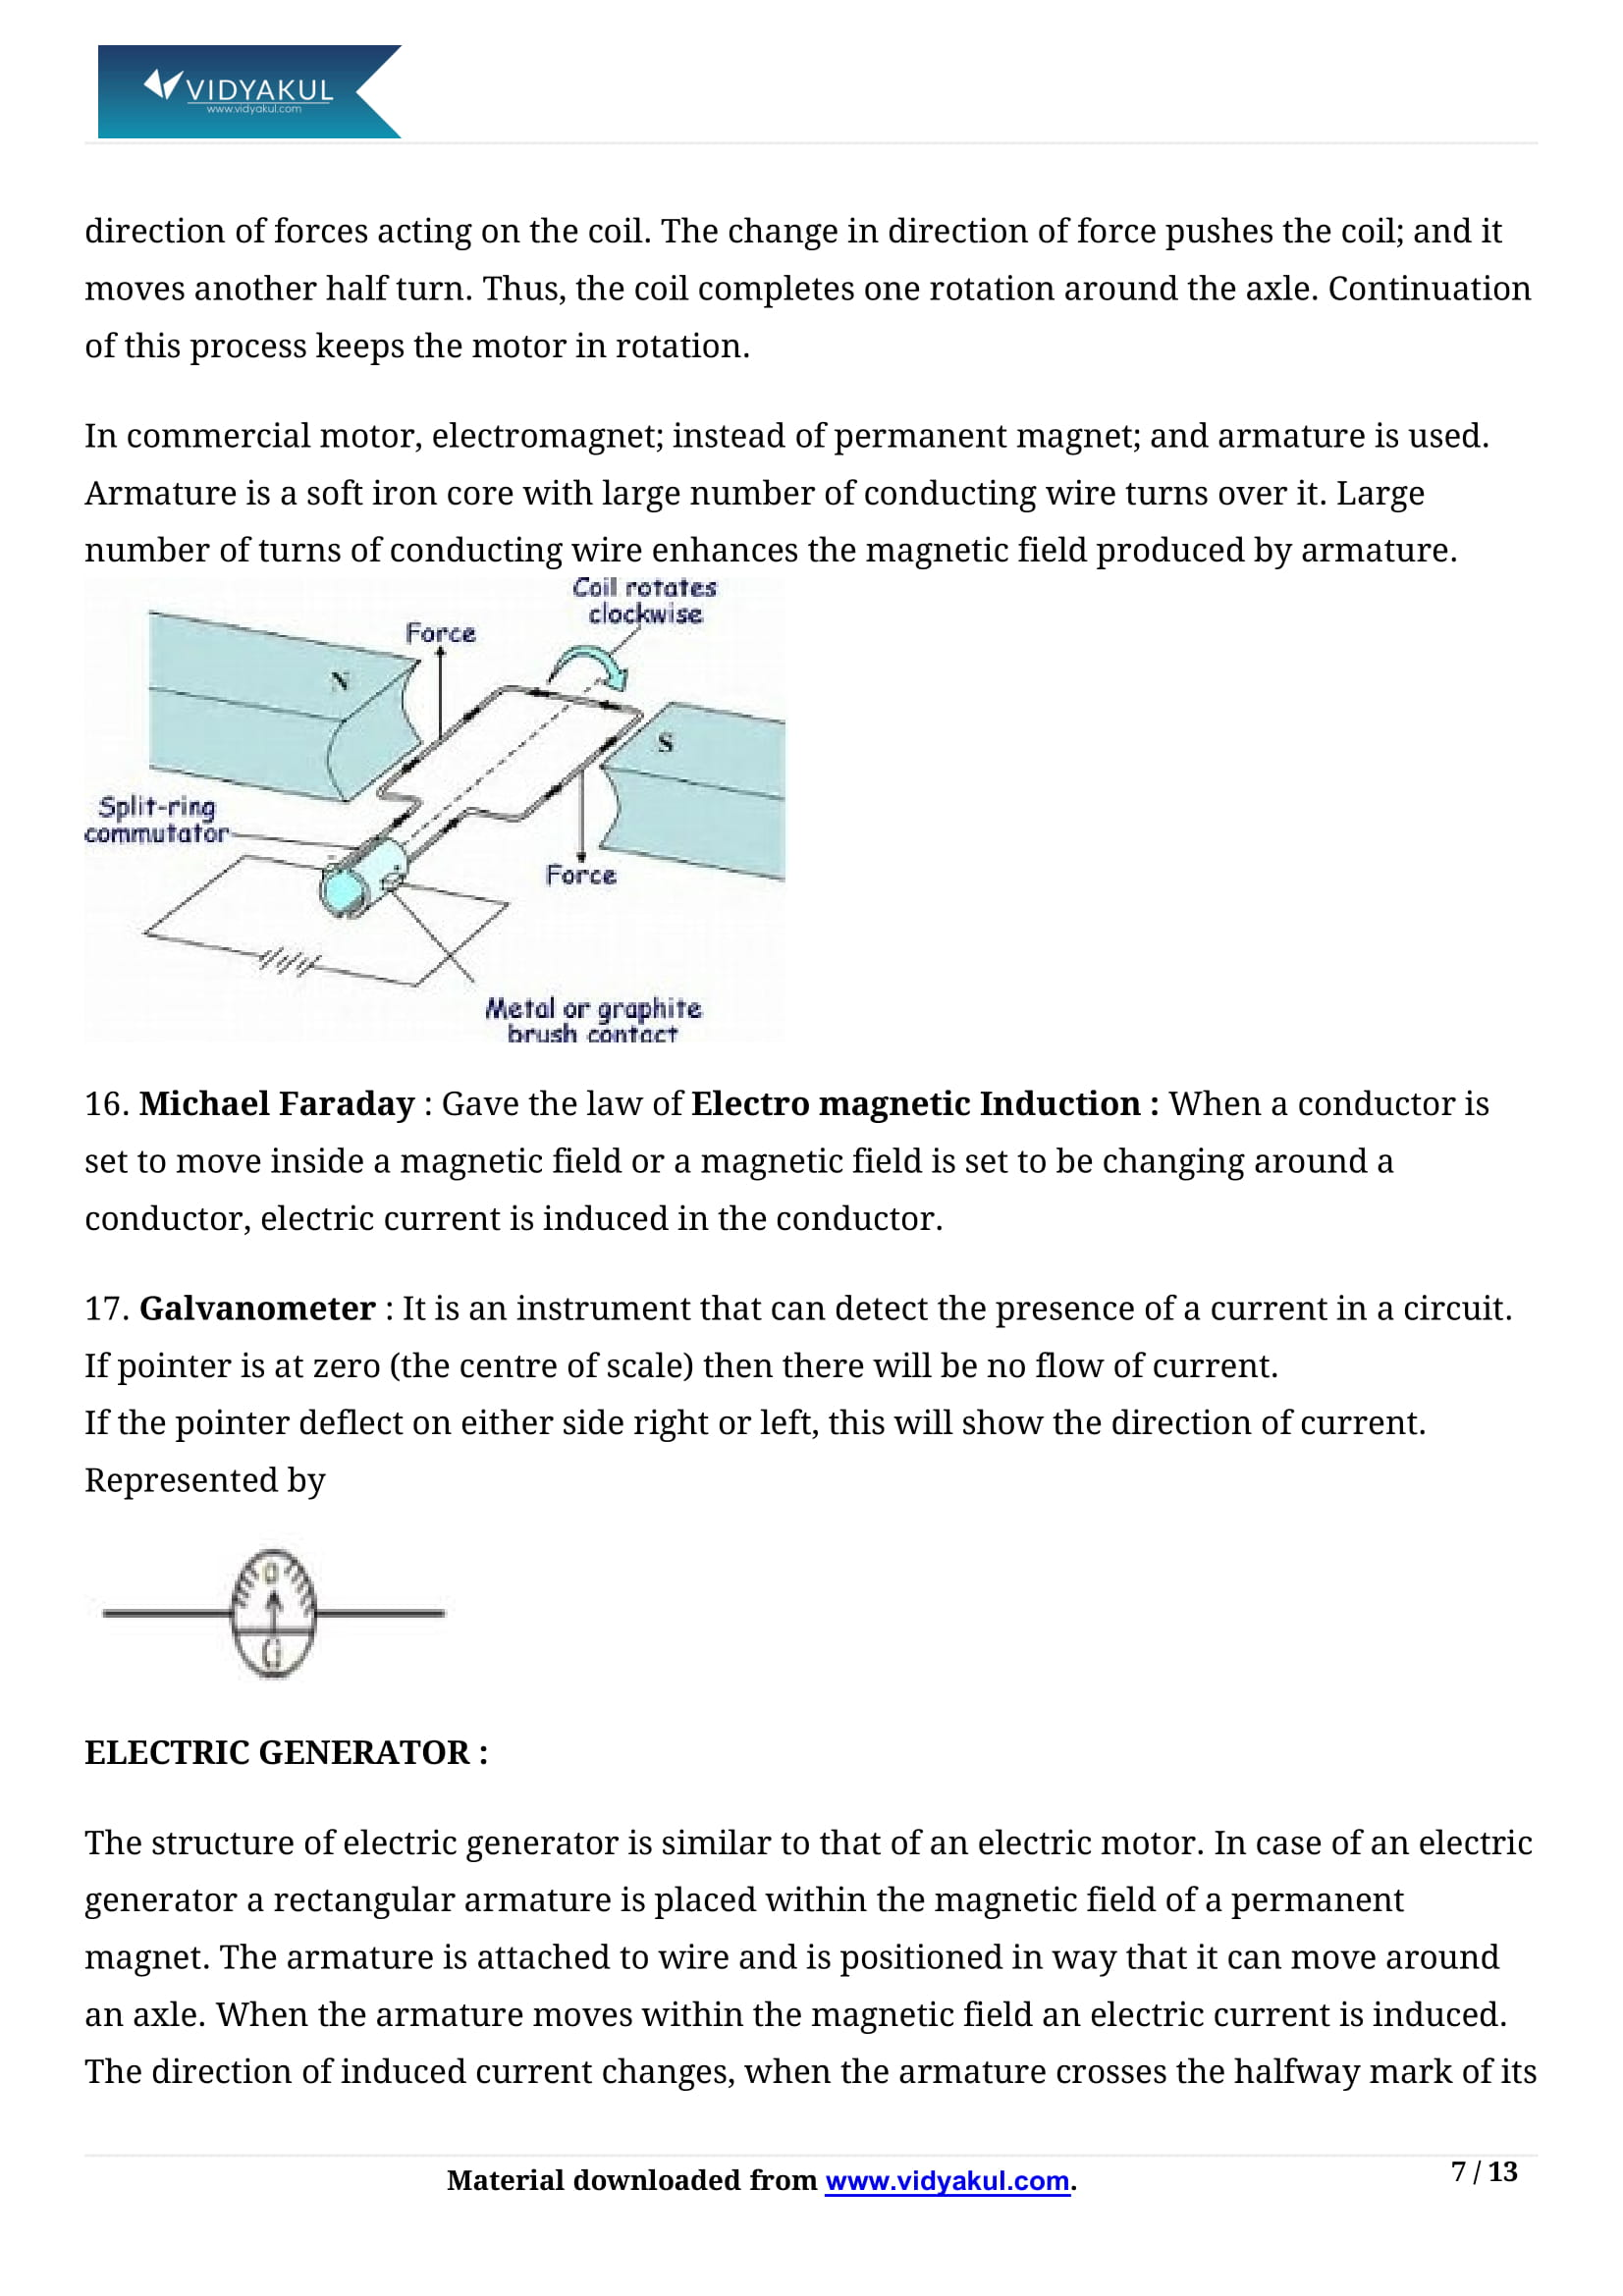 Magnetic Effects of Electric Current Class 10 Notes | Vidyakul